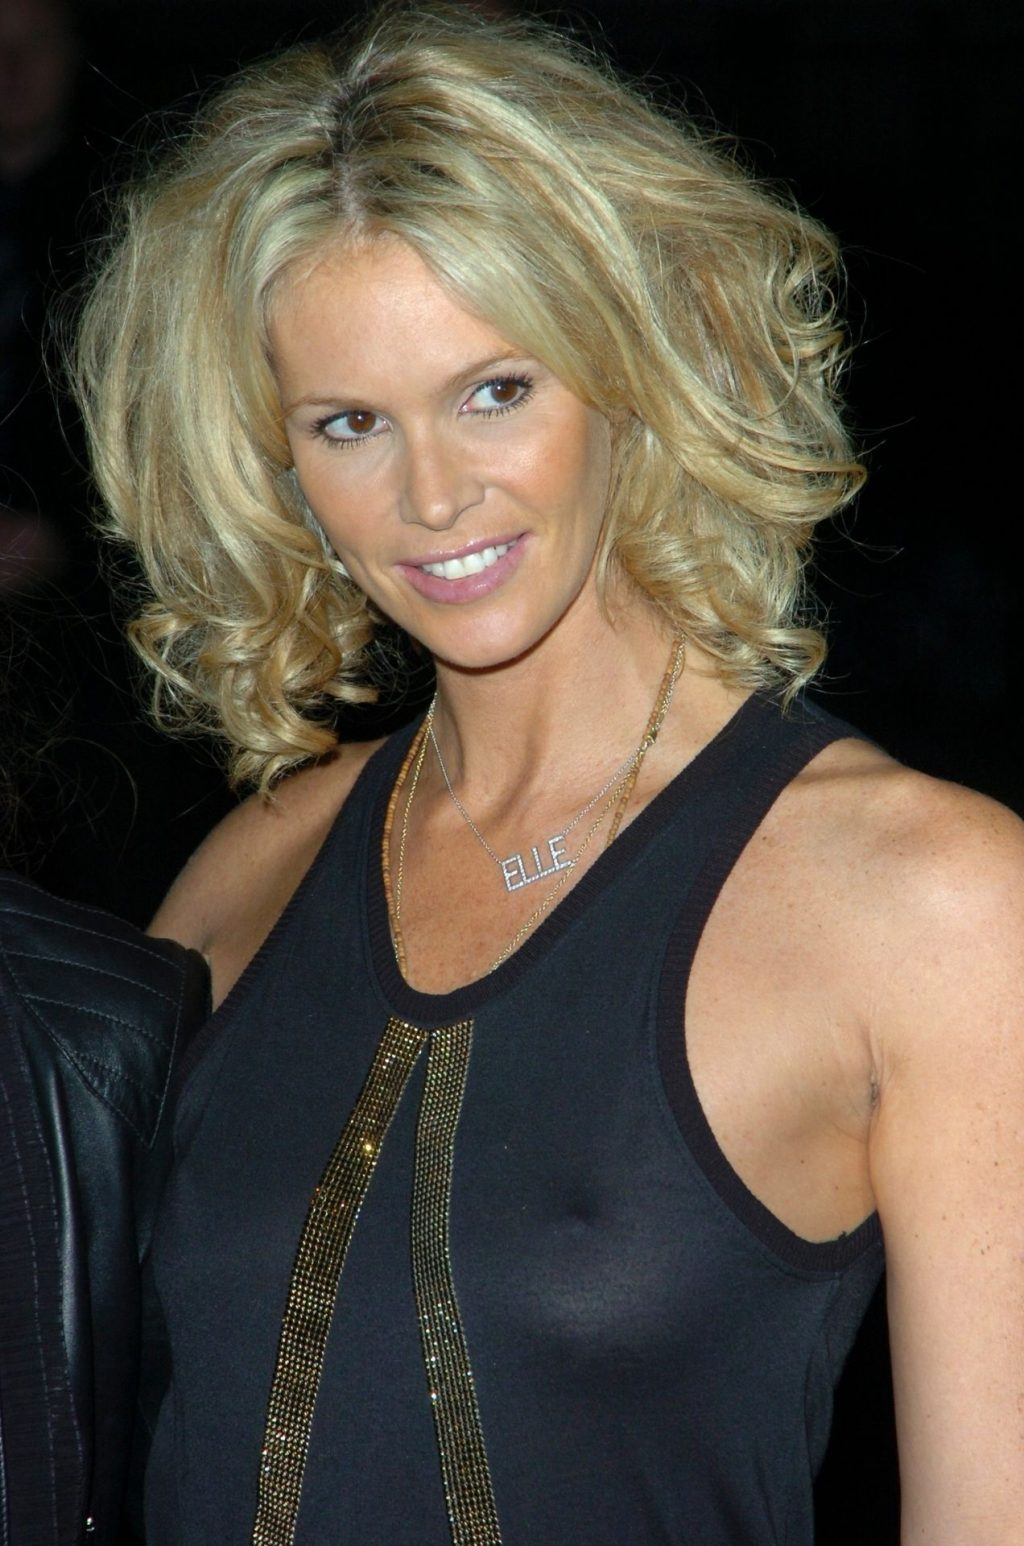 Elle Macpherson Displays Her Tits in London (3 Photos)